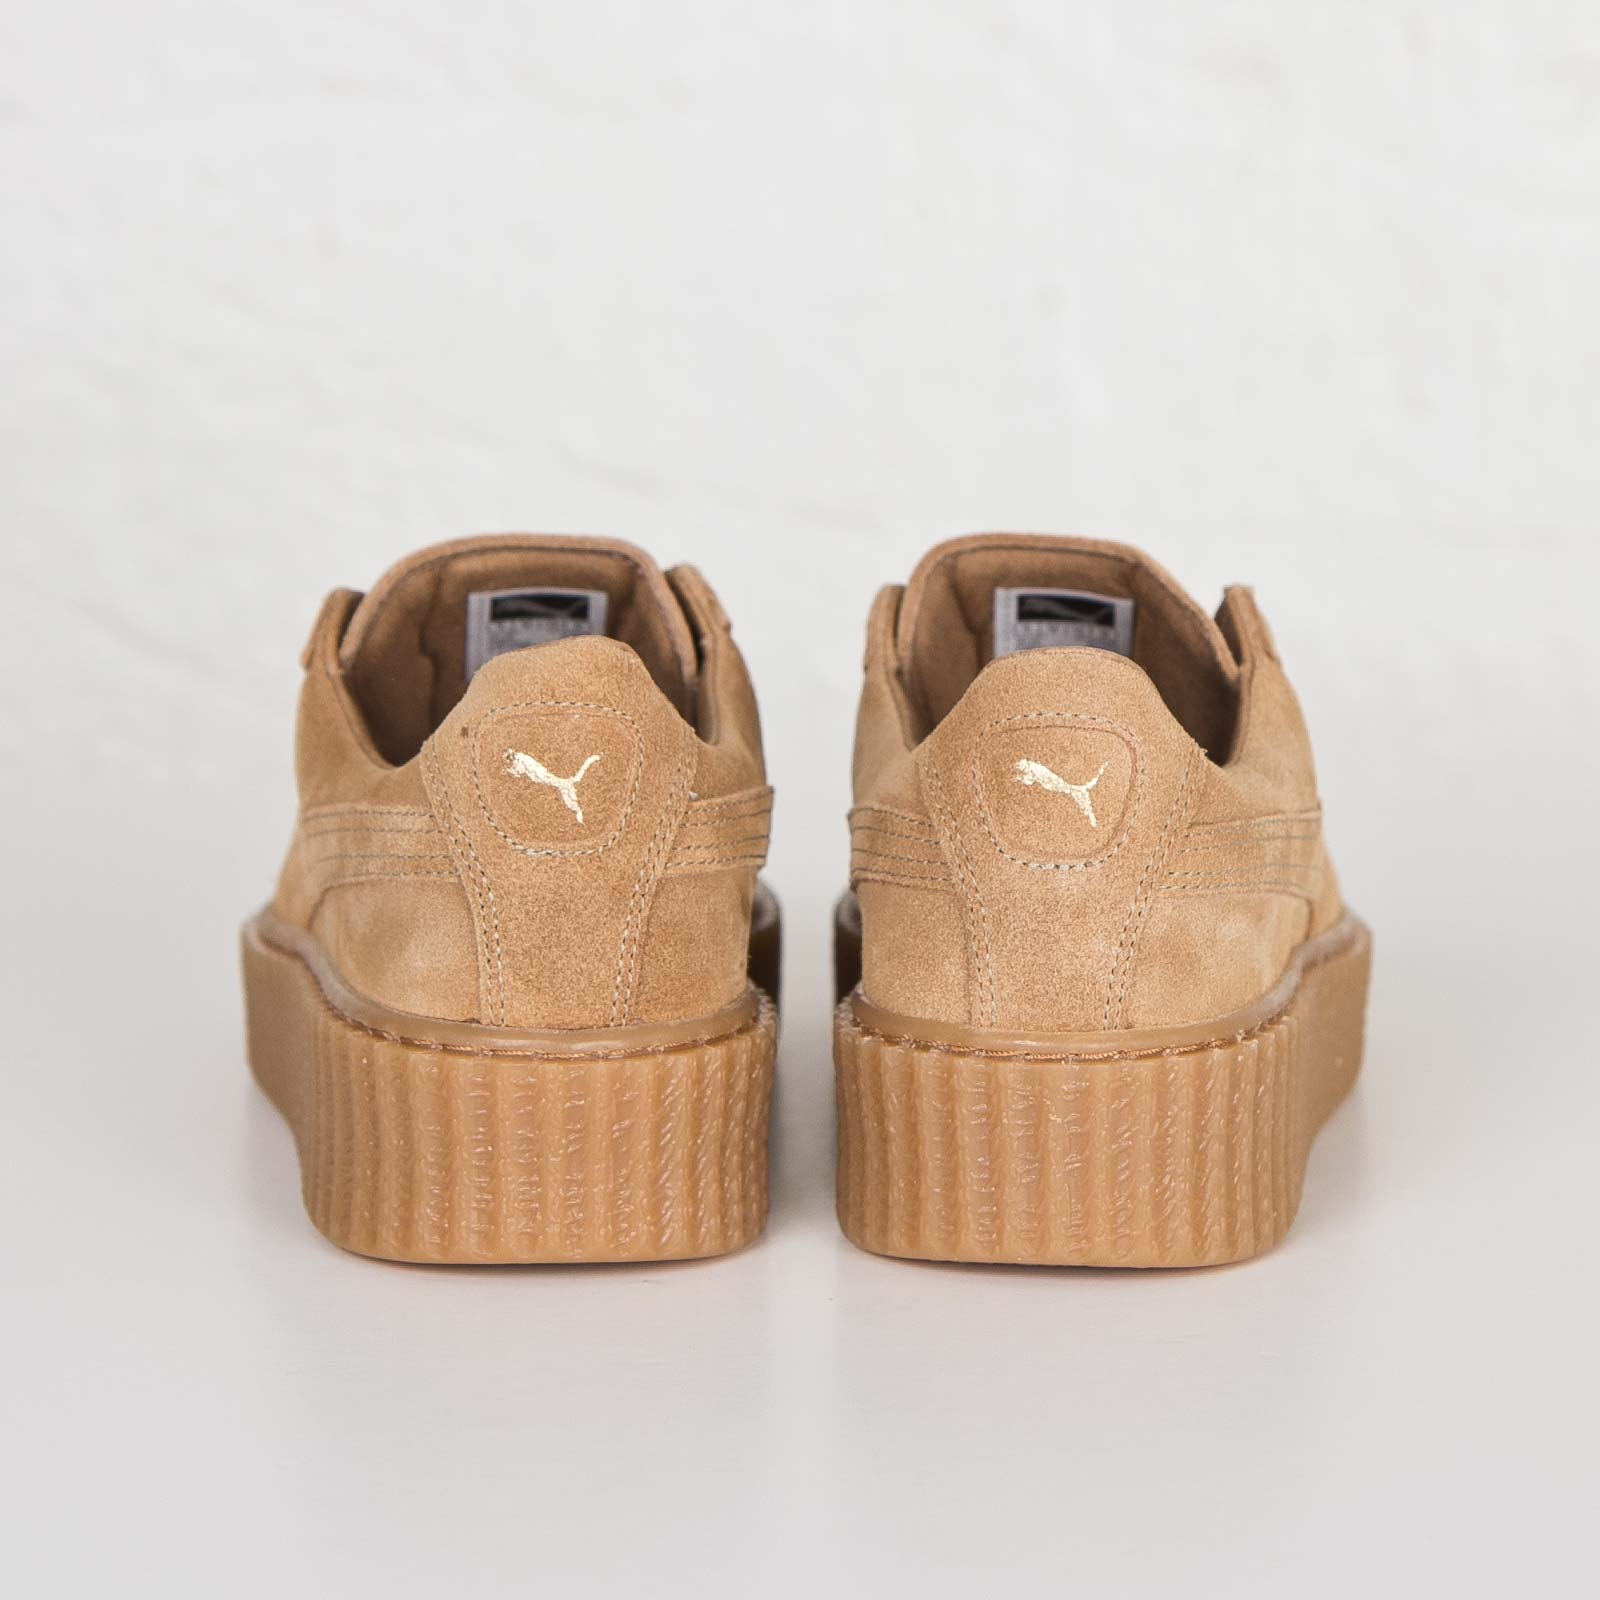 new arrival 67c83 c6a1a Puma Suede Creepers - 361005-03 - Sneakersnstuff | sneakers ...